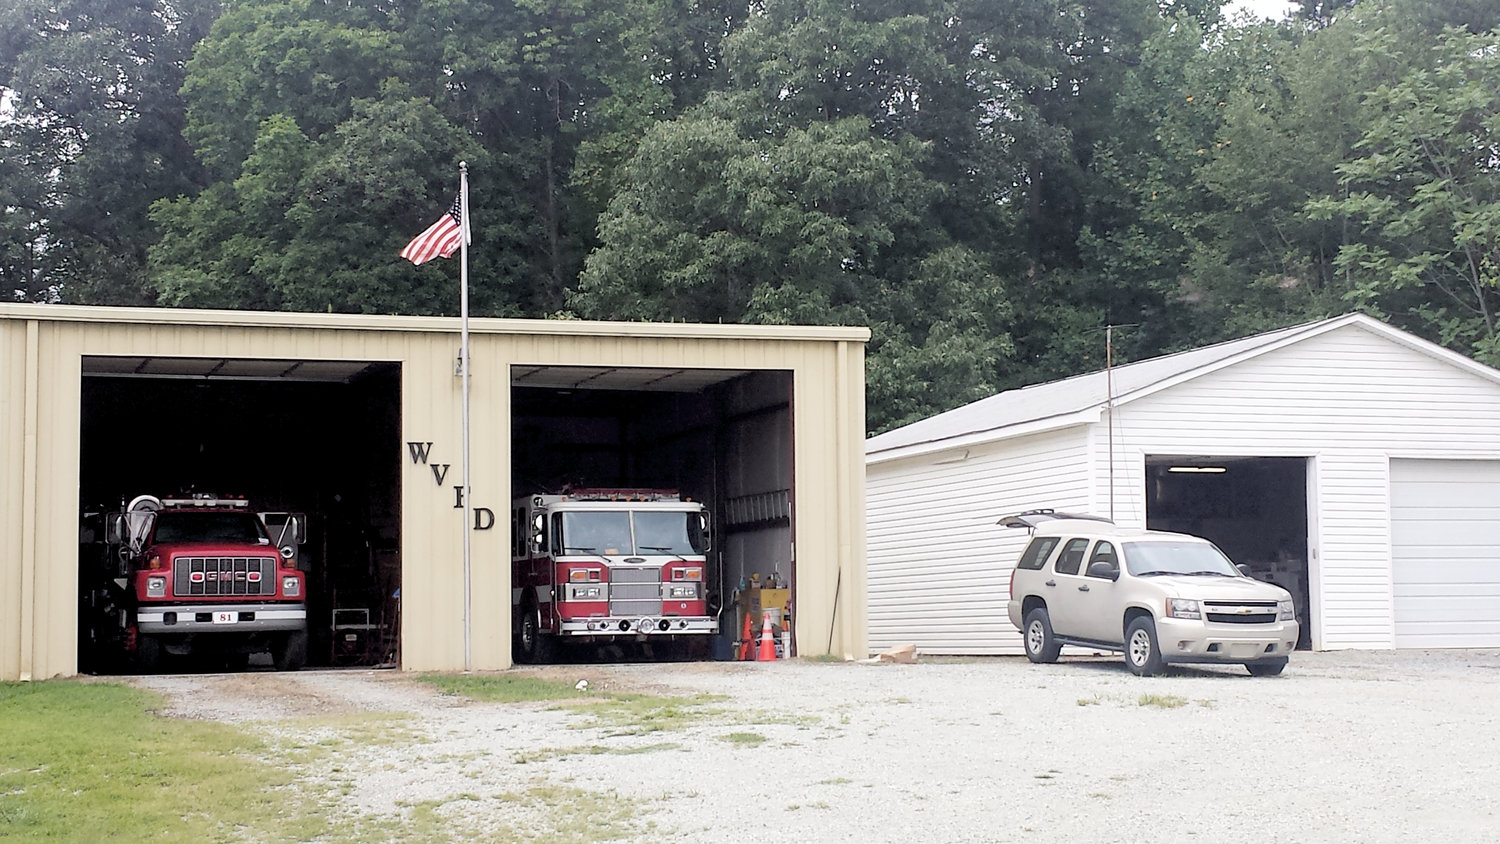 Woodsdale Volunteer Fire Department faced two challenges that had put them on probation by the state. However, according to Chief Greg Freeman, the department has now met those requirements.